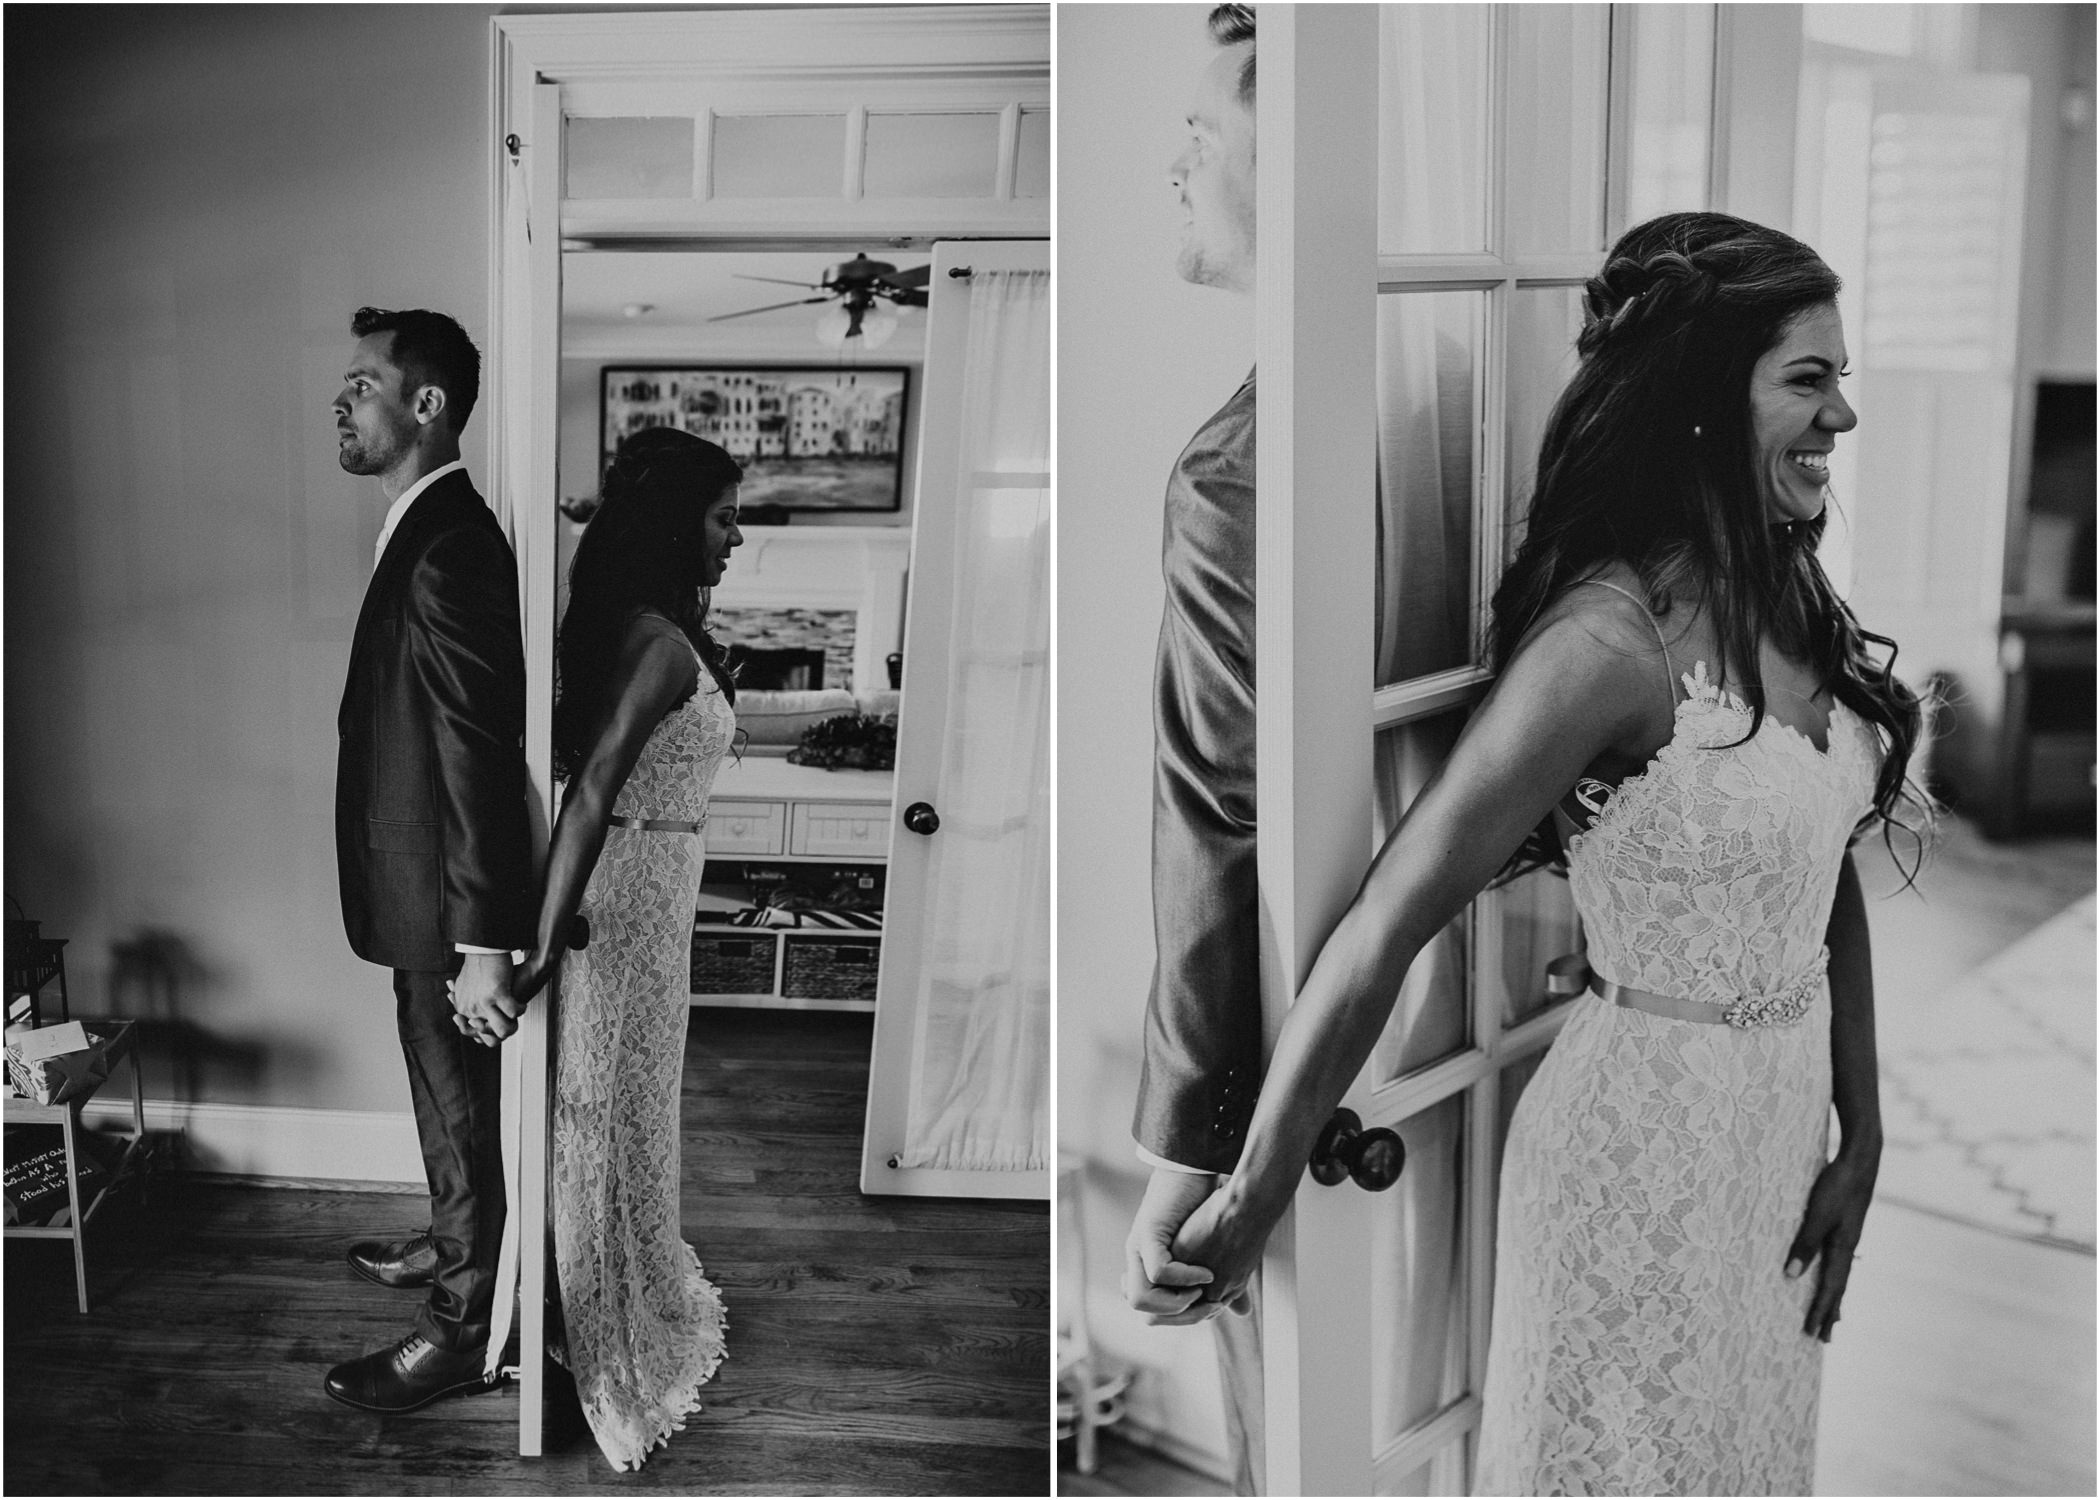 24 Garden wedding - intimate wedding atlanta wedding photographer.jpg